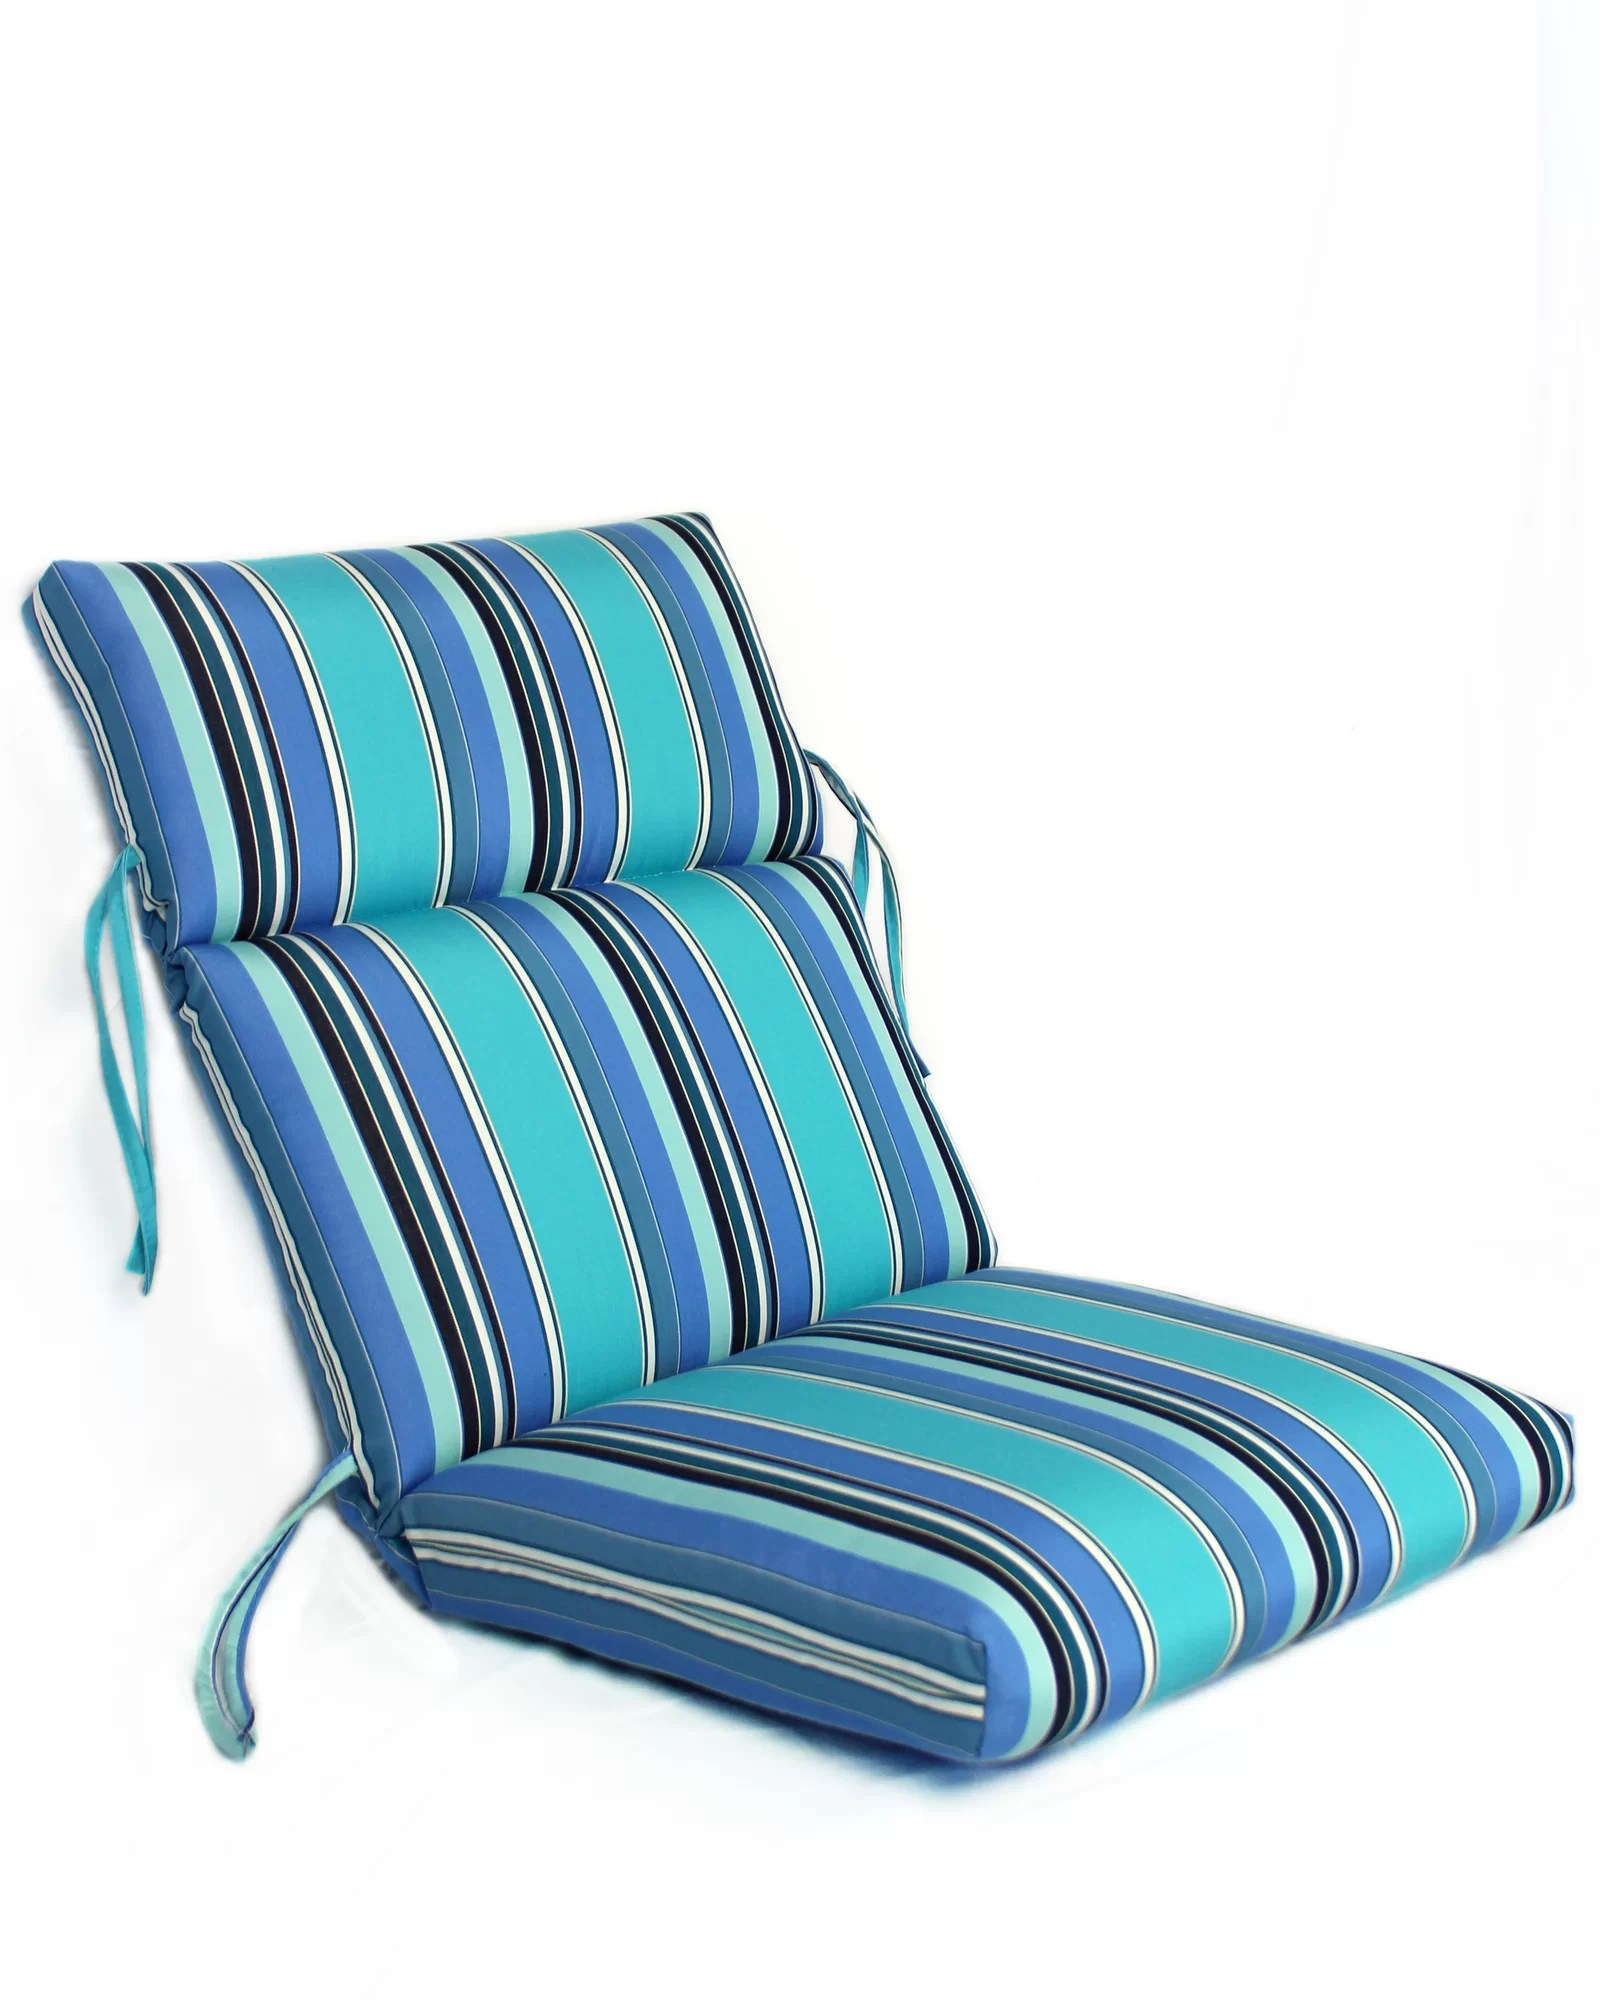 Outdoor Lounge Chair Cushions Comfort Classics Inc Waterfall Outdoor Sunbrella Lounge